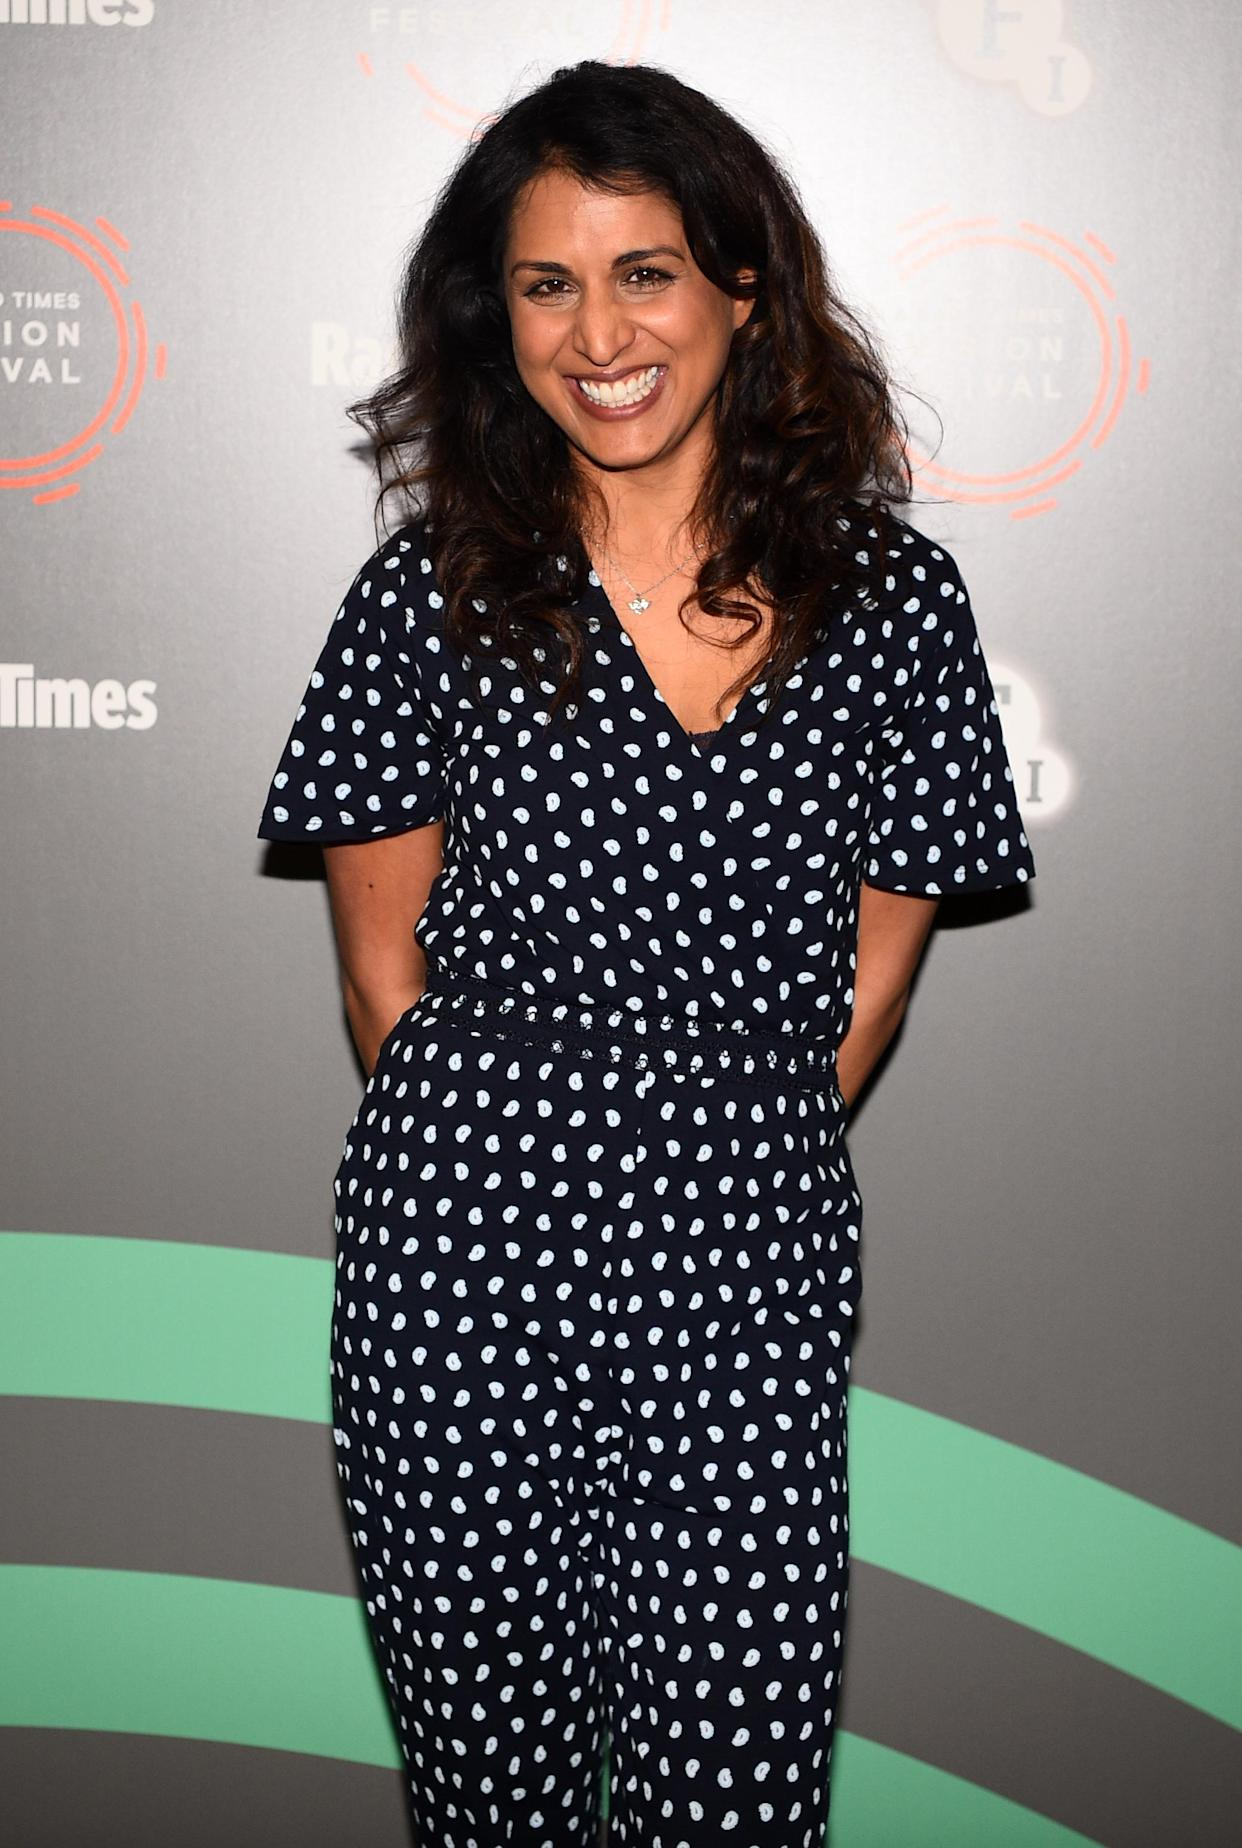 Maya Sondhi at a photo call for Line of Duty, during the BFI and Radio Times Television Festival at the BFI Southbank, London. (Photo by Kirsty O'Connor/PA Images via Getty Images)